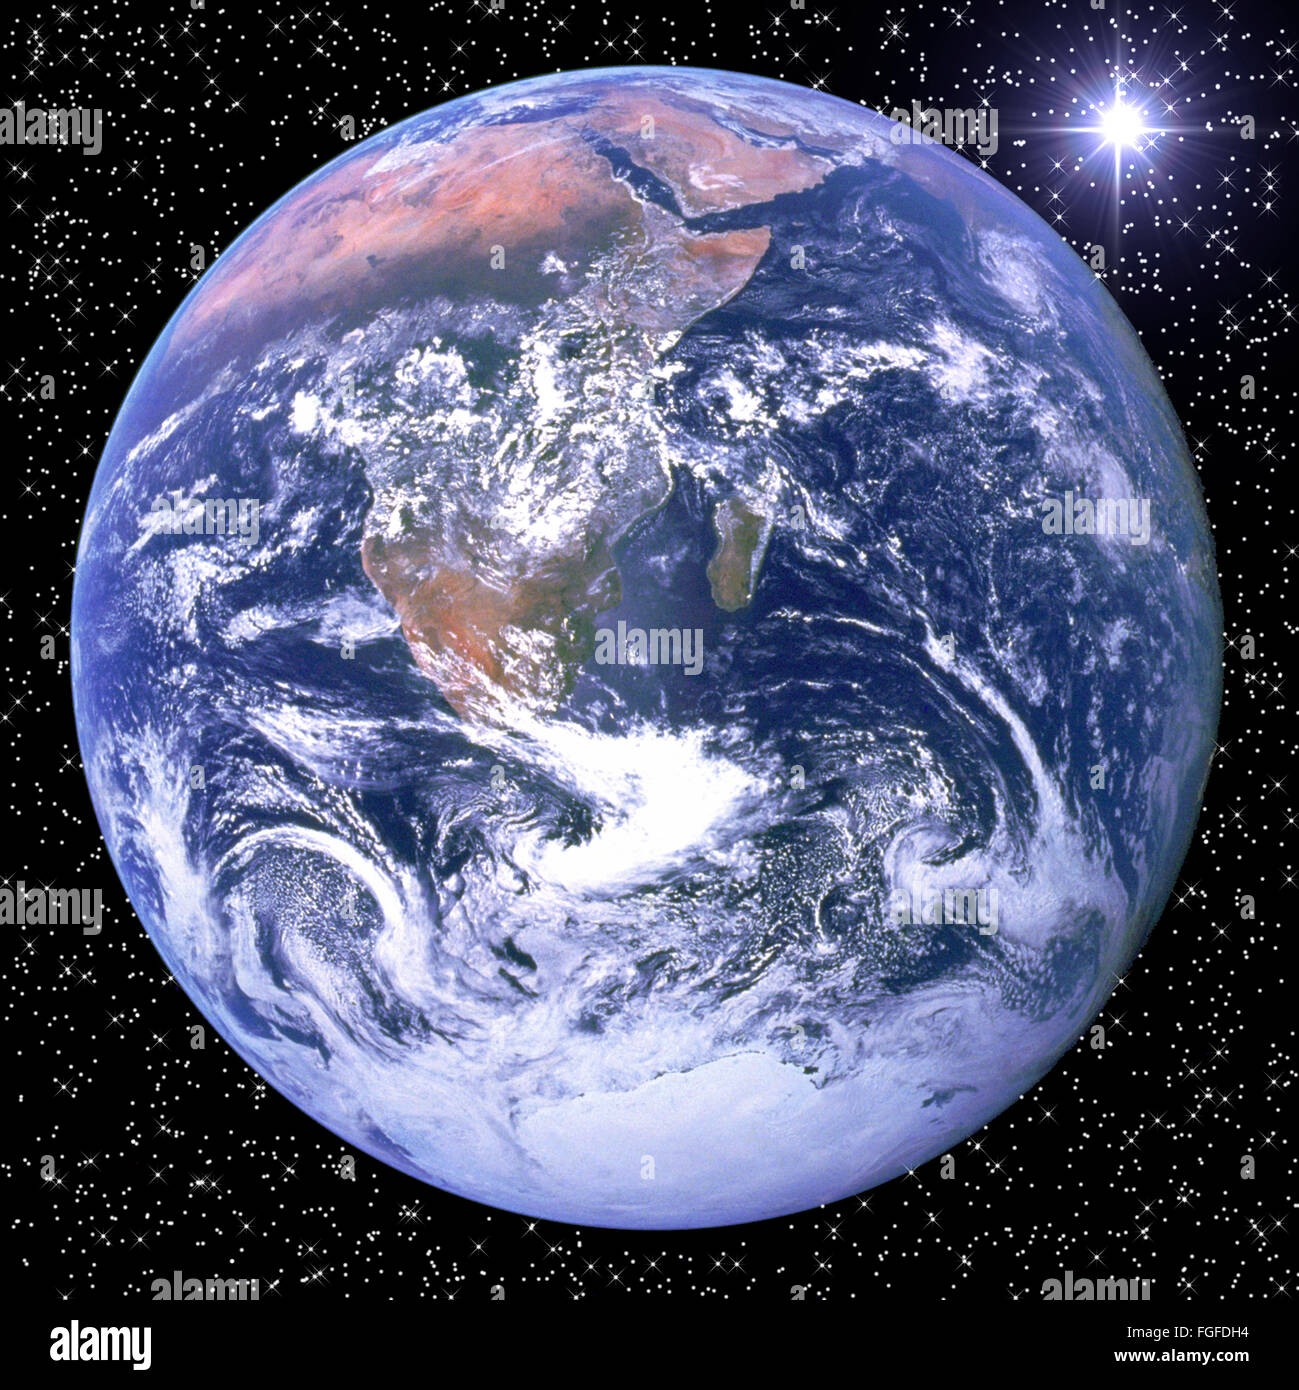 NASA image if earth in a starry sky - Stock Image